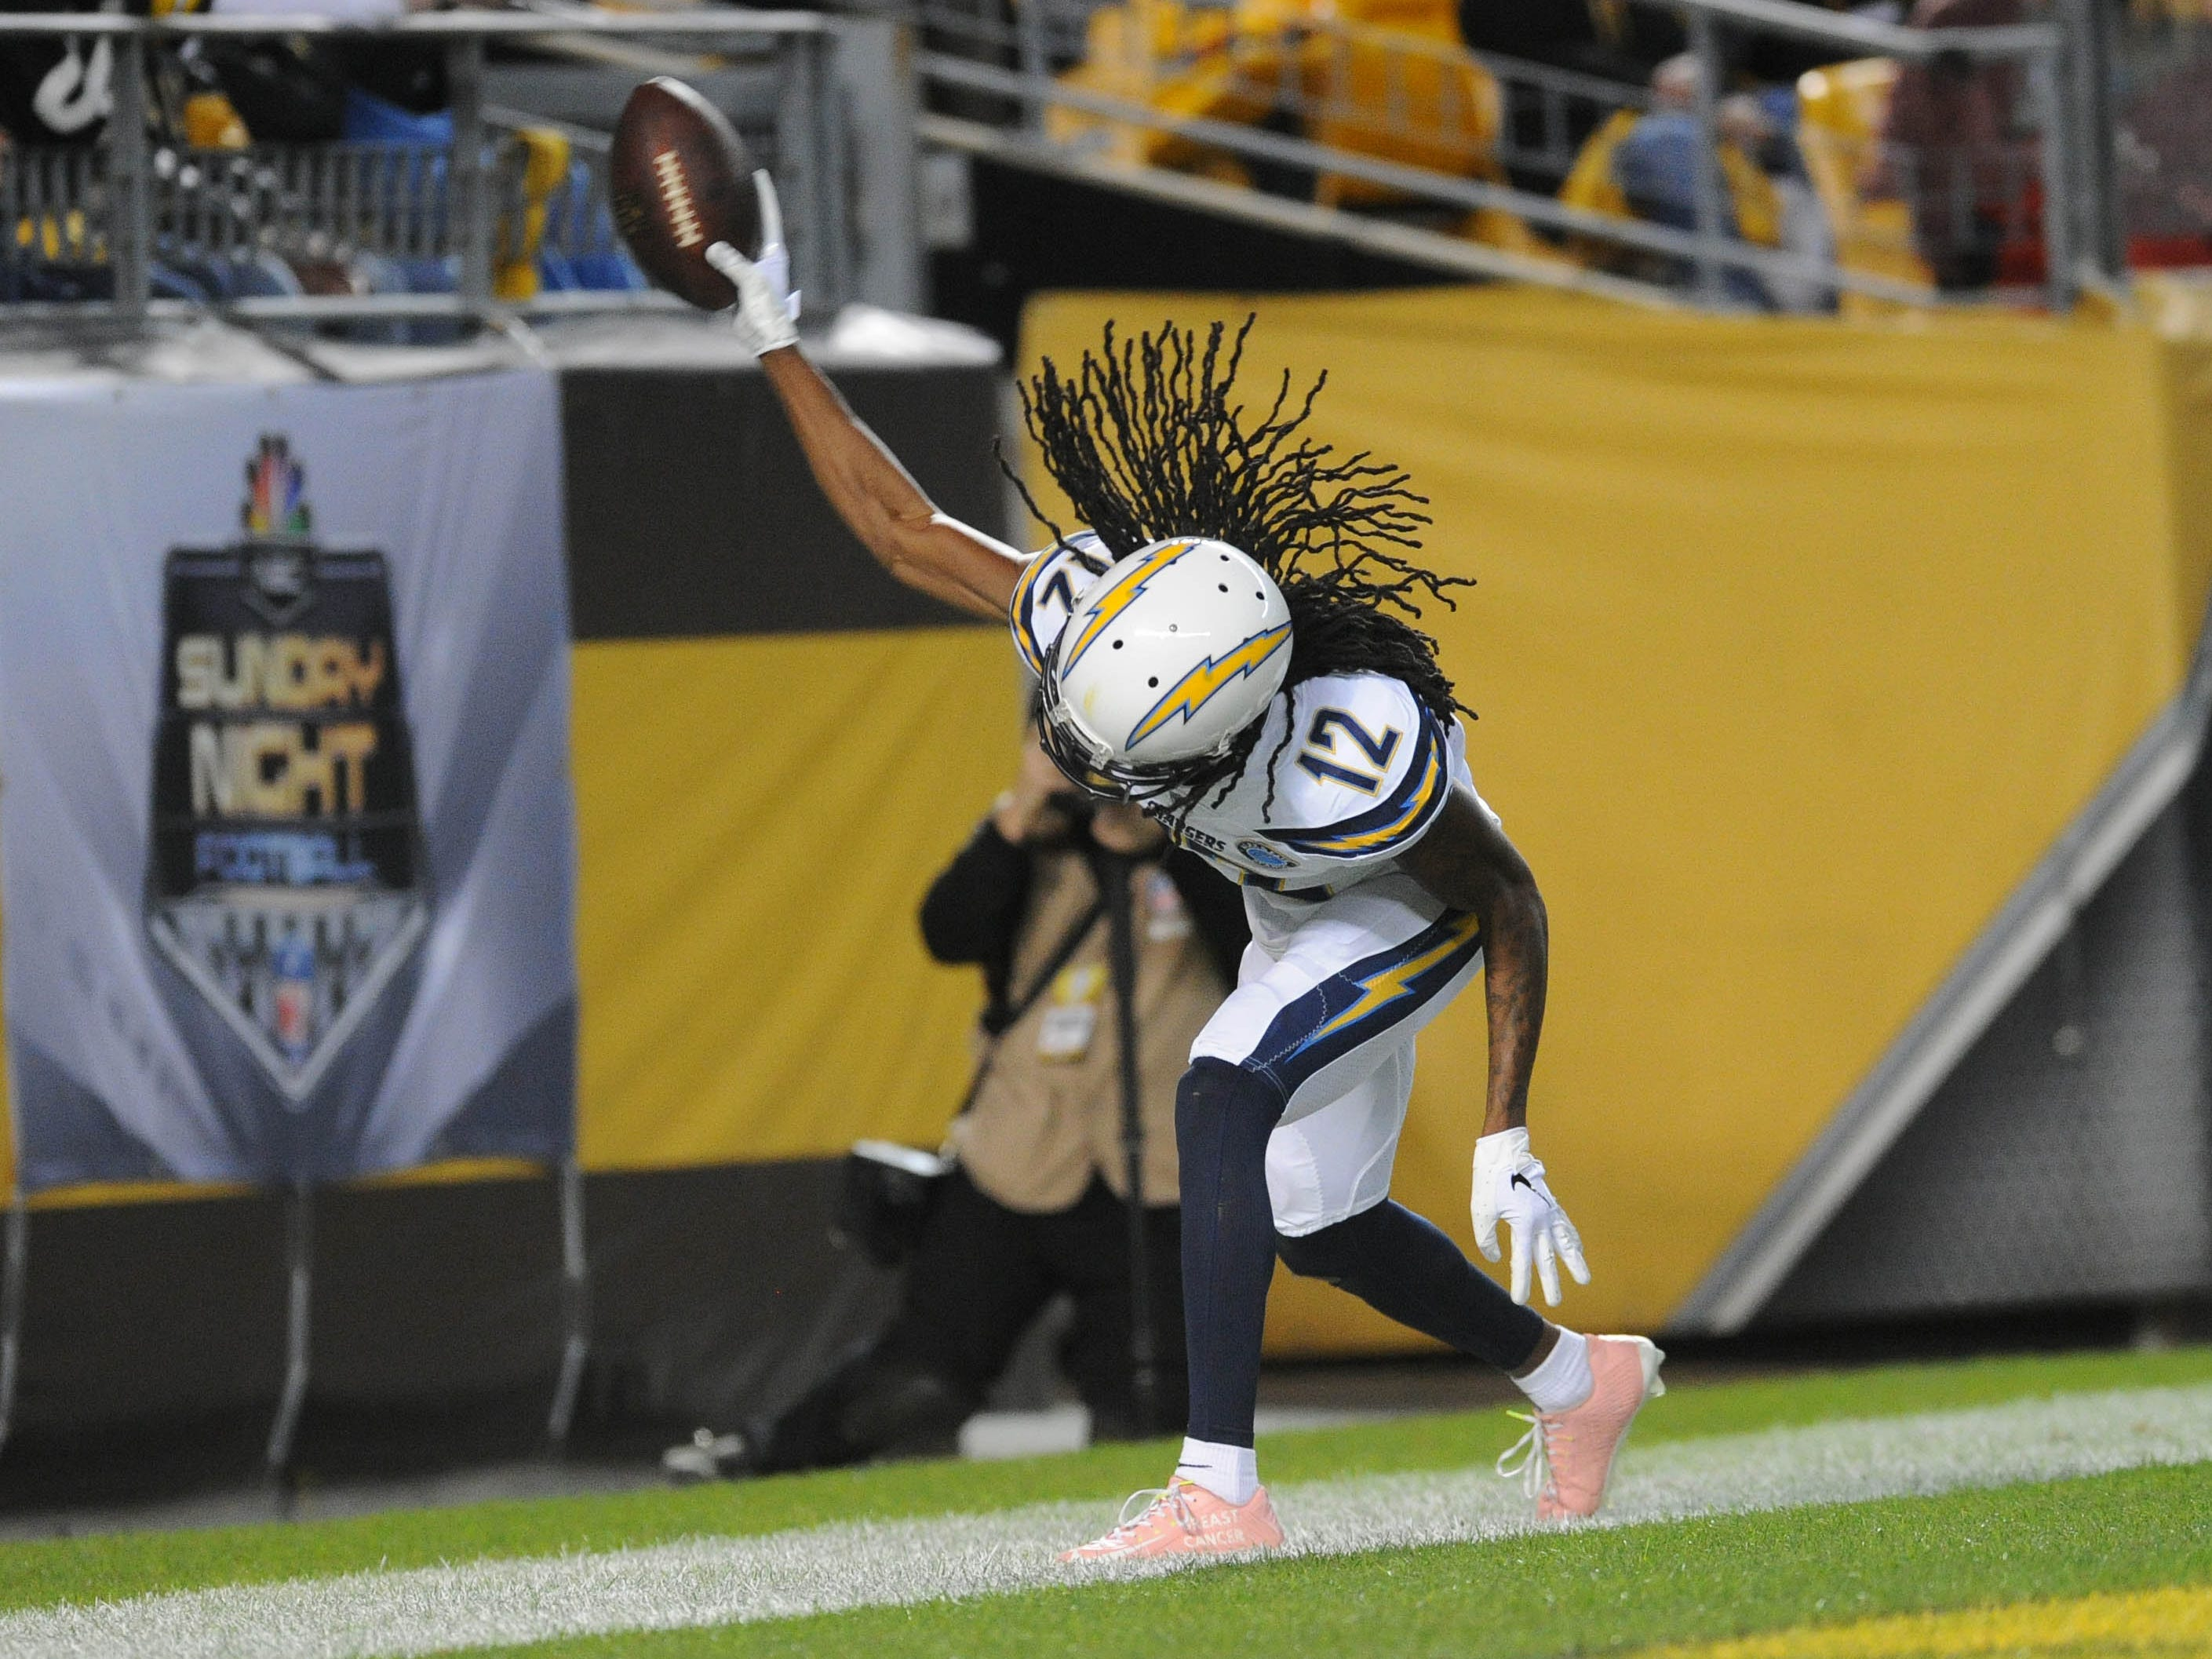 San Diego Chargers wide receiver Travis Benjamin celebrates a first quarter touchdown against the Pittsburgh Steelers at Heinz Field.